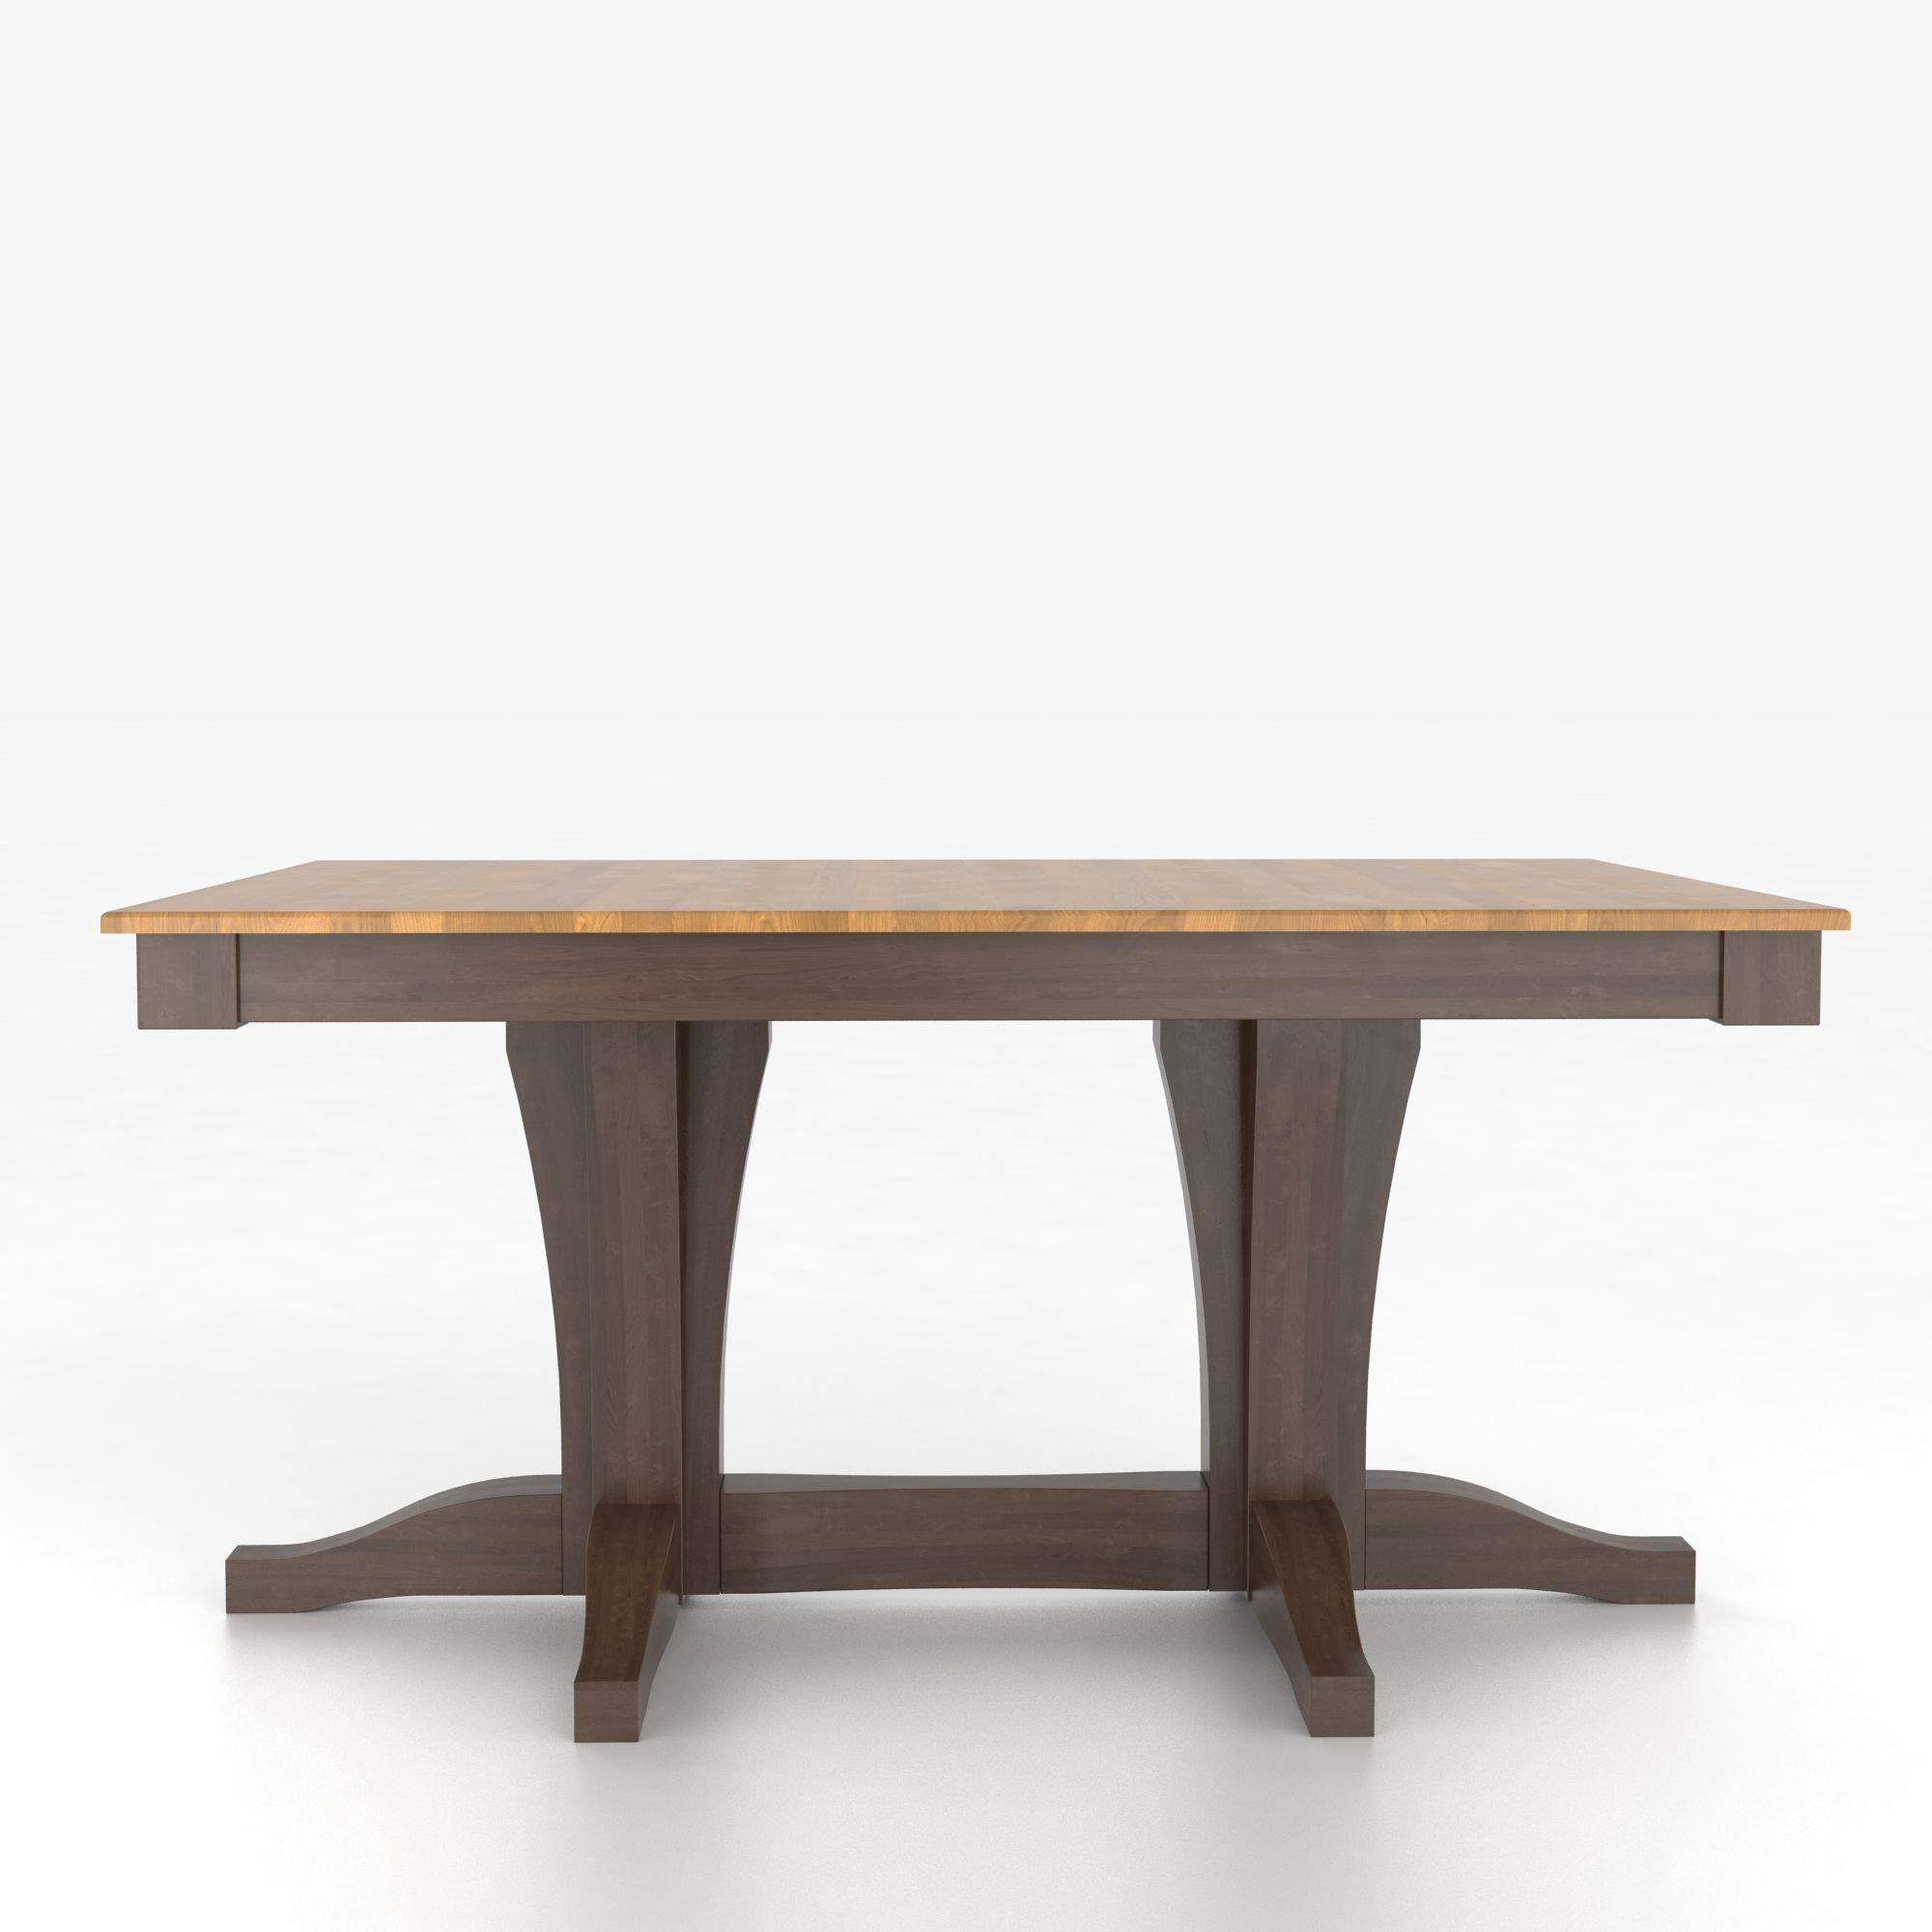 Custom Dining Tables Customizable Rectangular Table with Pedestal by Canadel at Dinette Depot